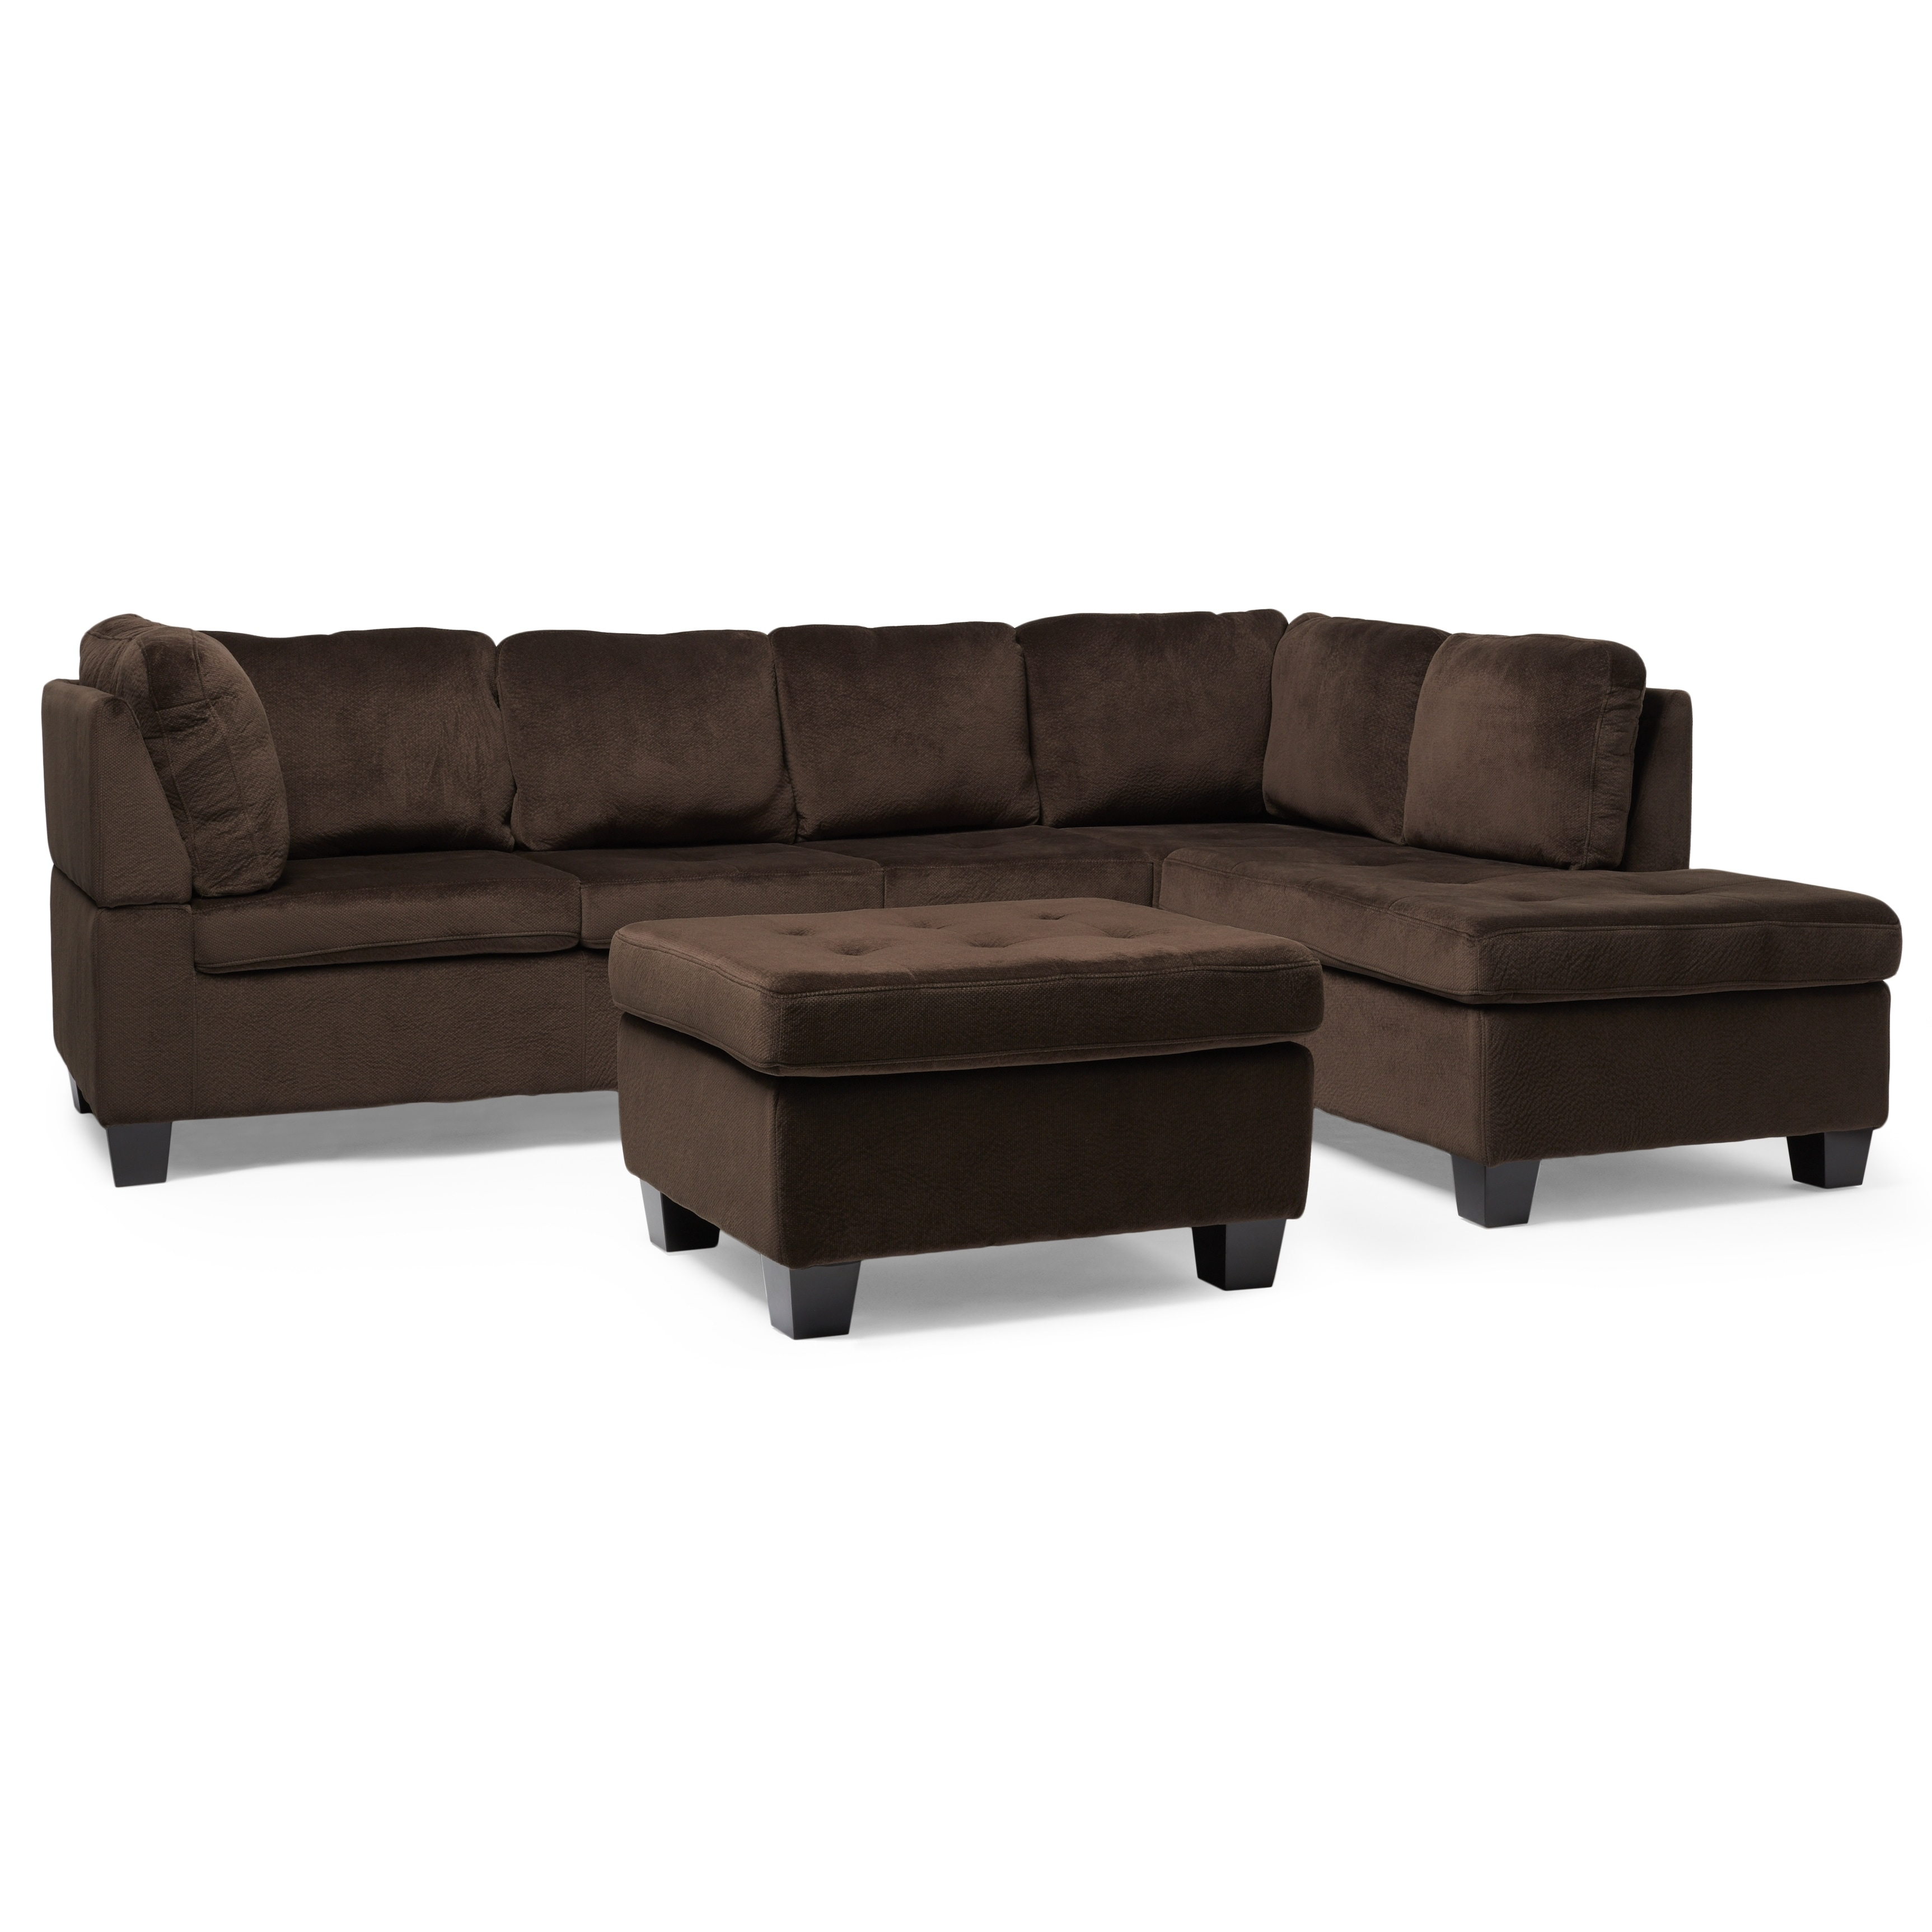 Shop Canterbury 3 Piece Fabric Sectional Sofa Set By Christopher